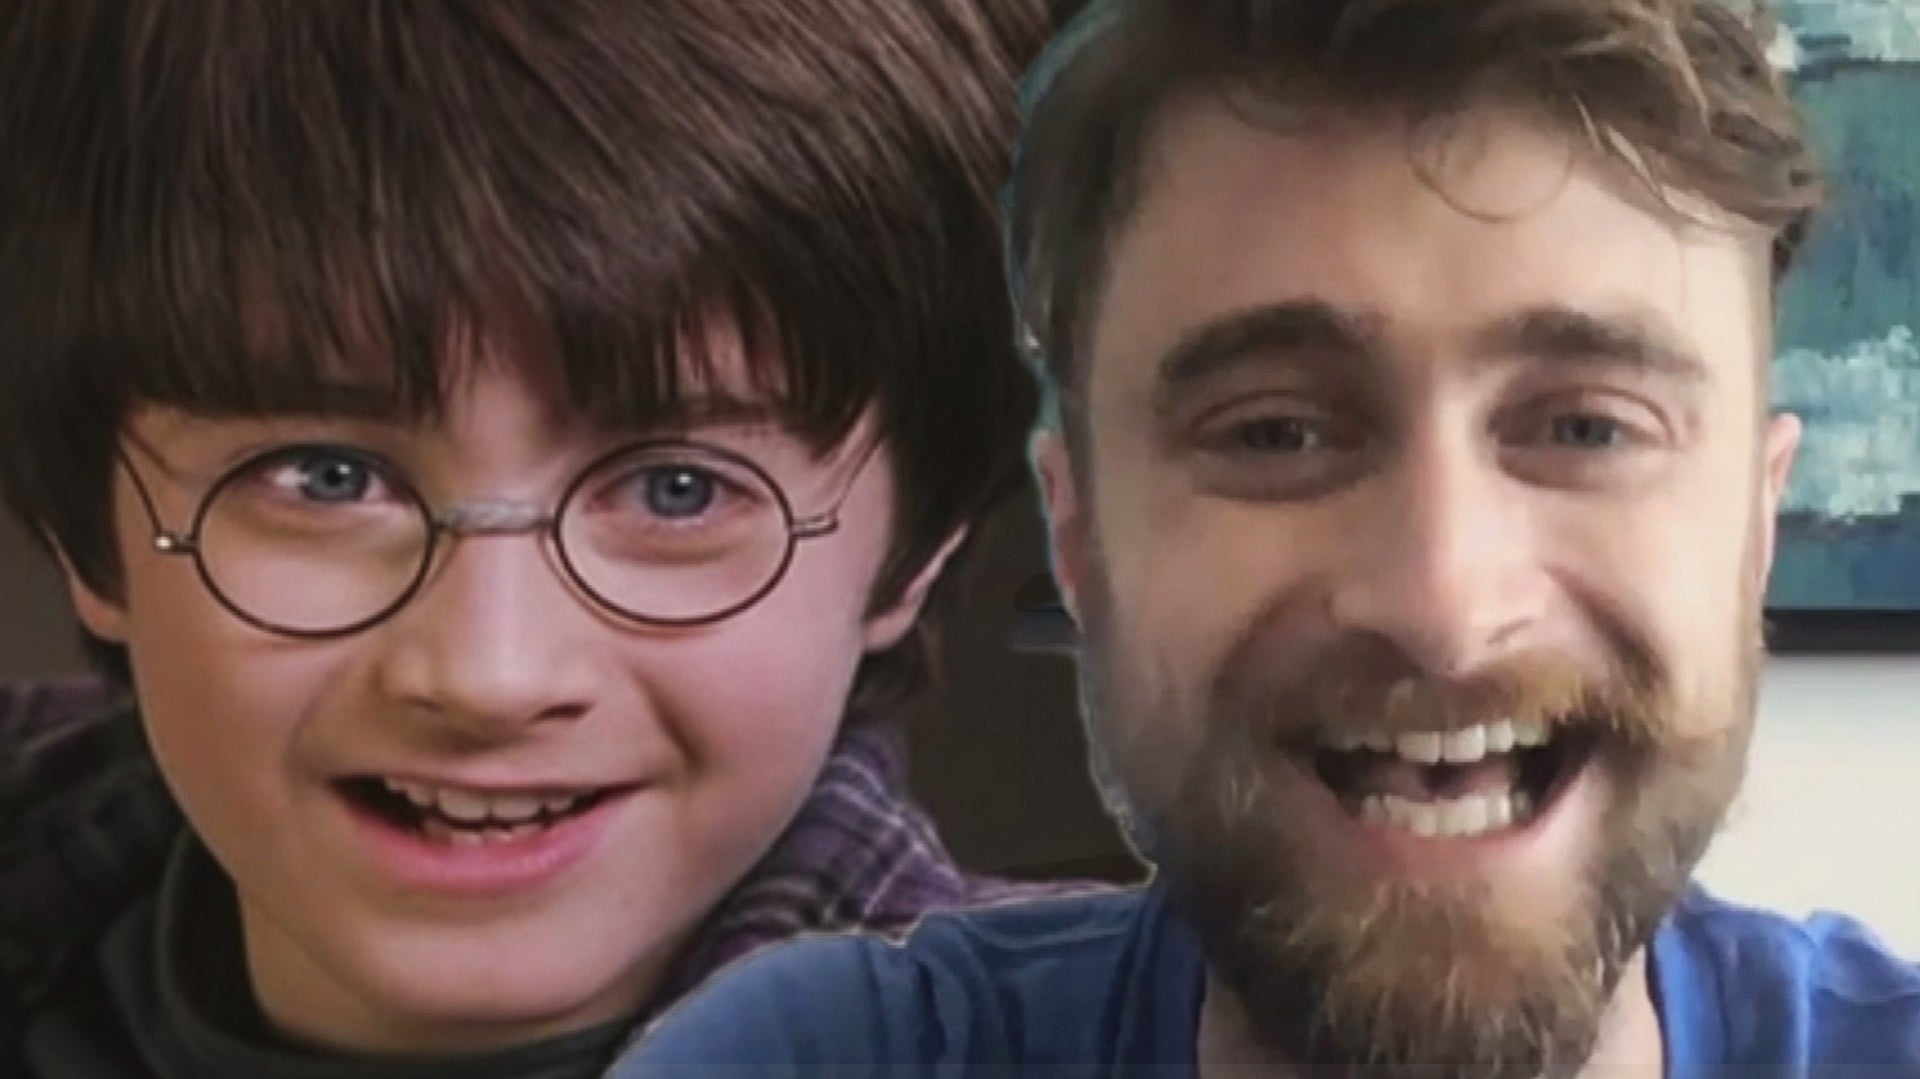 Daniel Radcliffe Reflects on the 20th Anniversary of 'Harry Potter' Films (Exclusive)